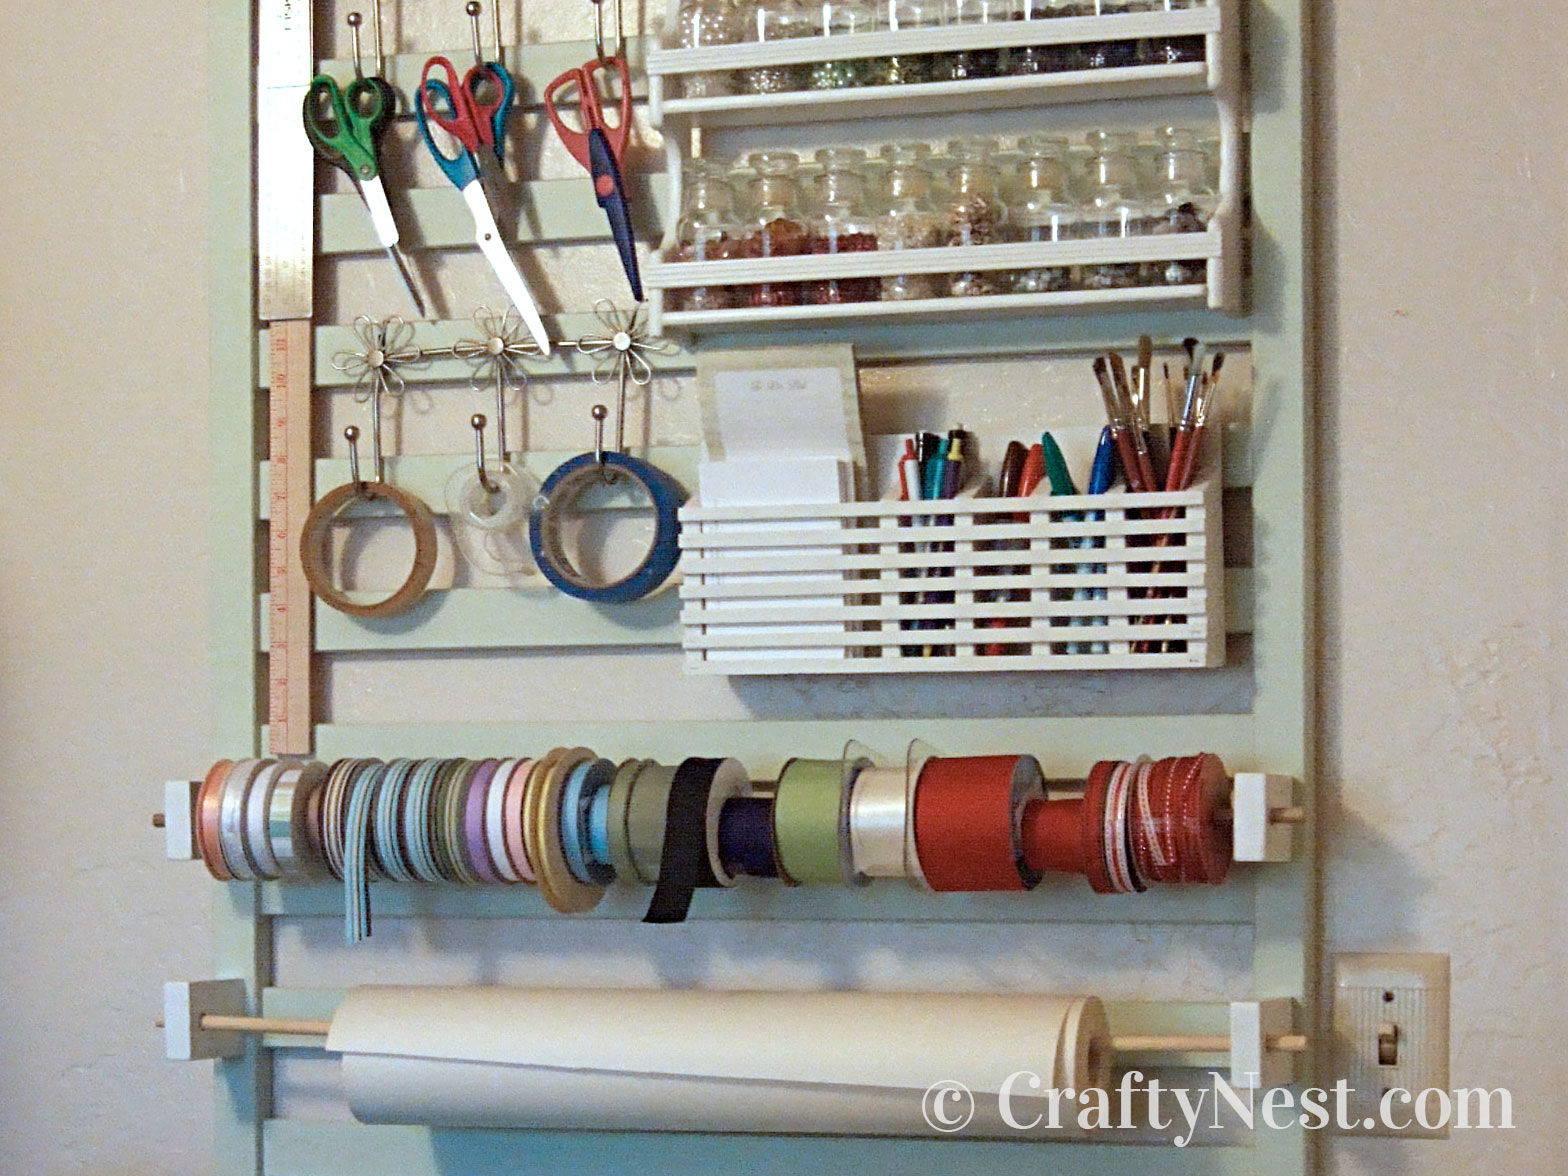 Crafting wall organizer, photo